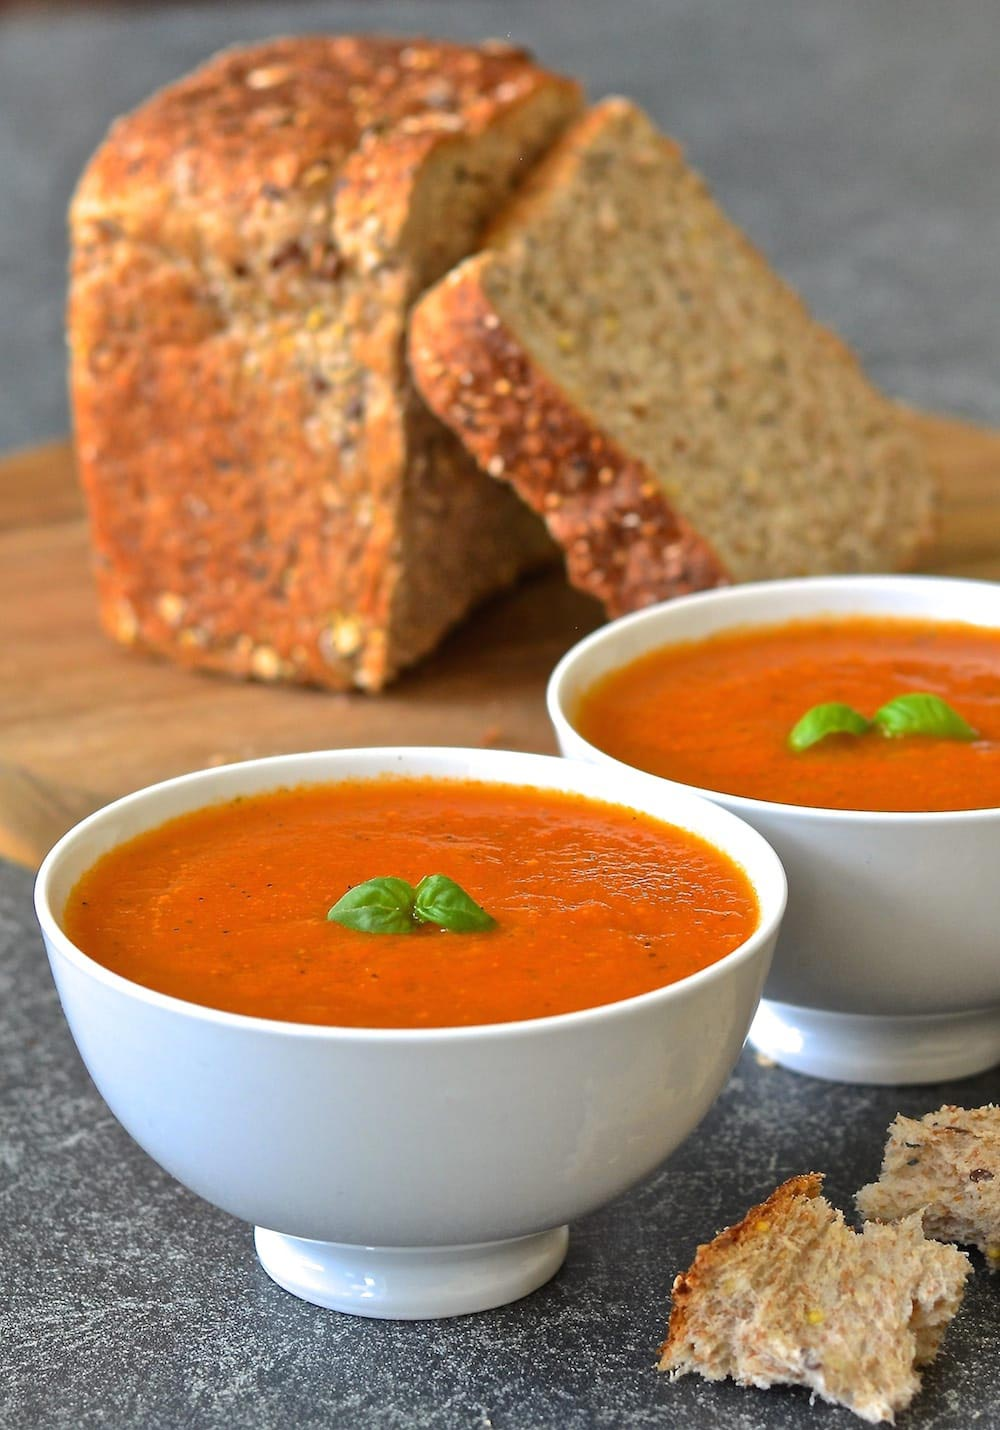 tomato basil soup in bowls